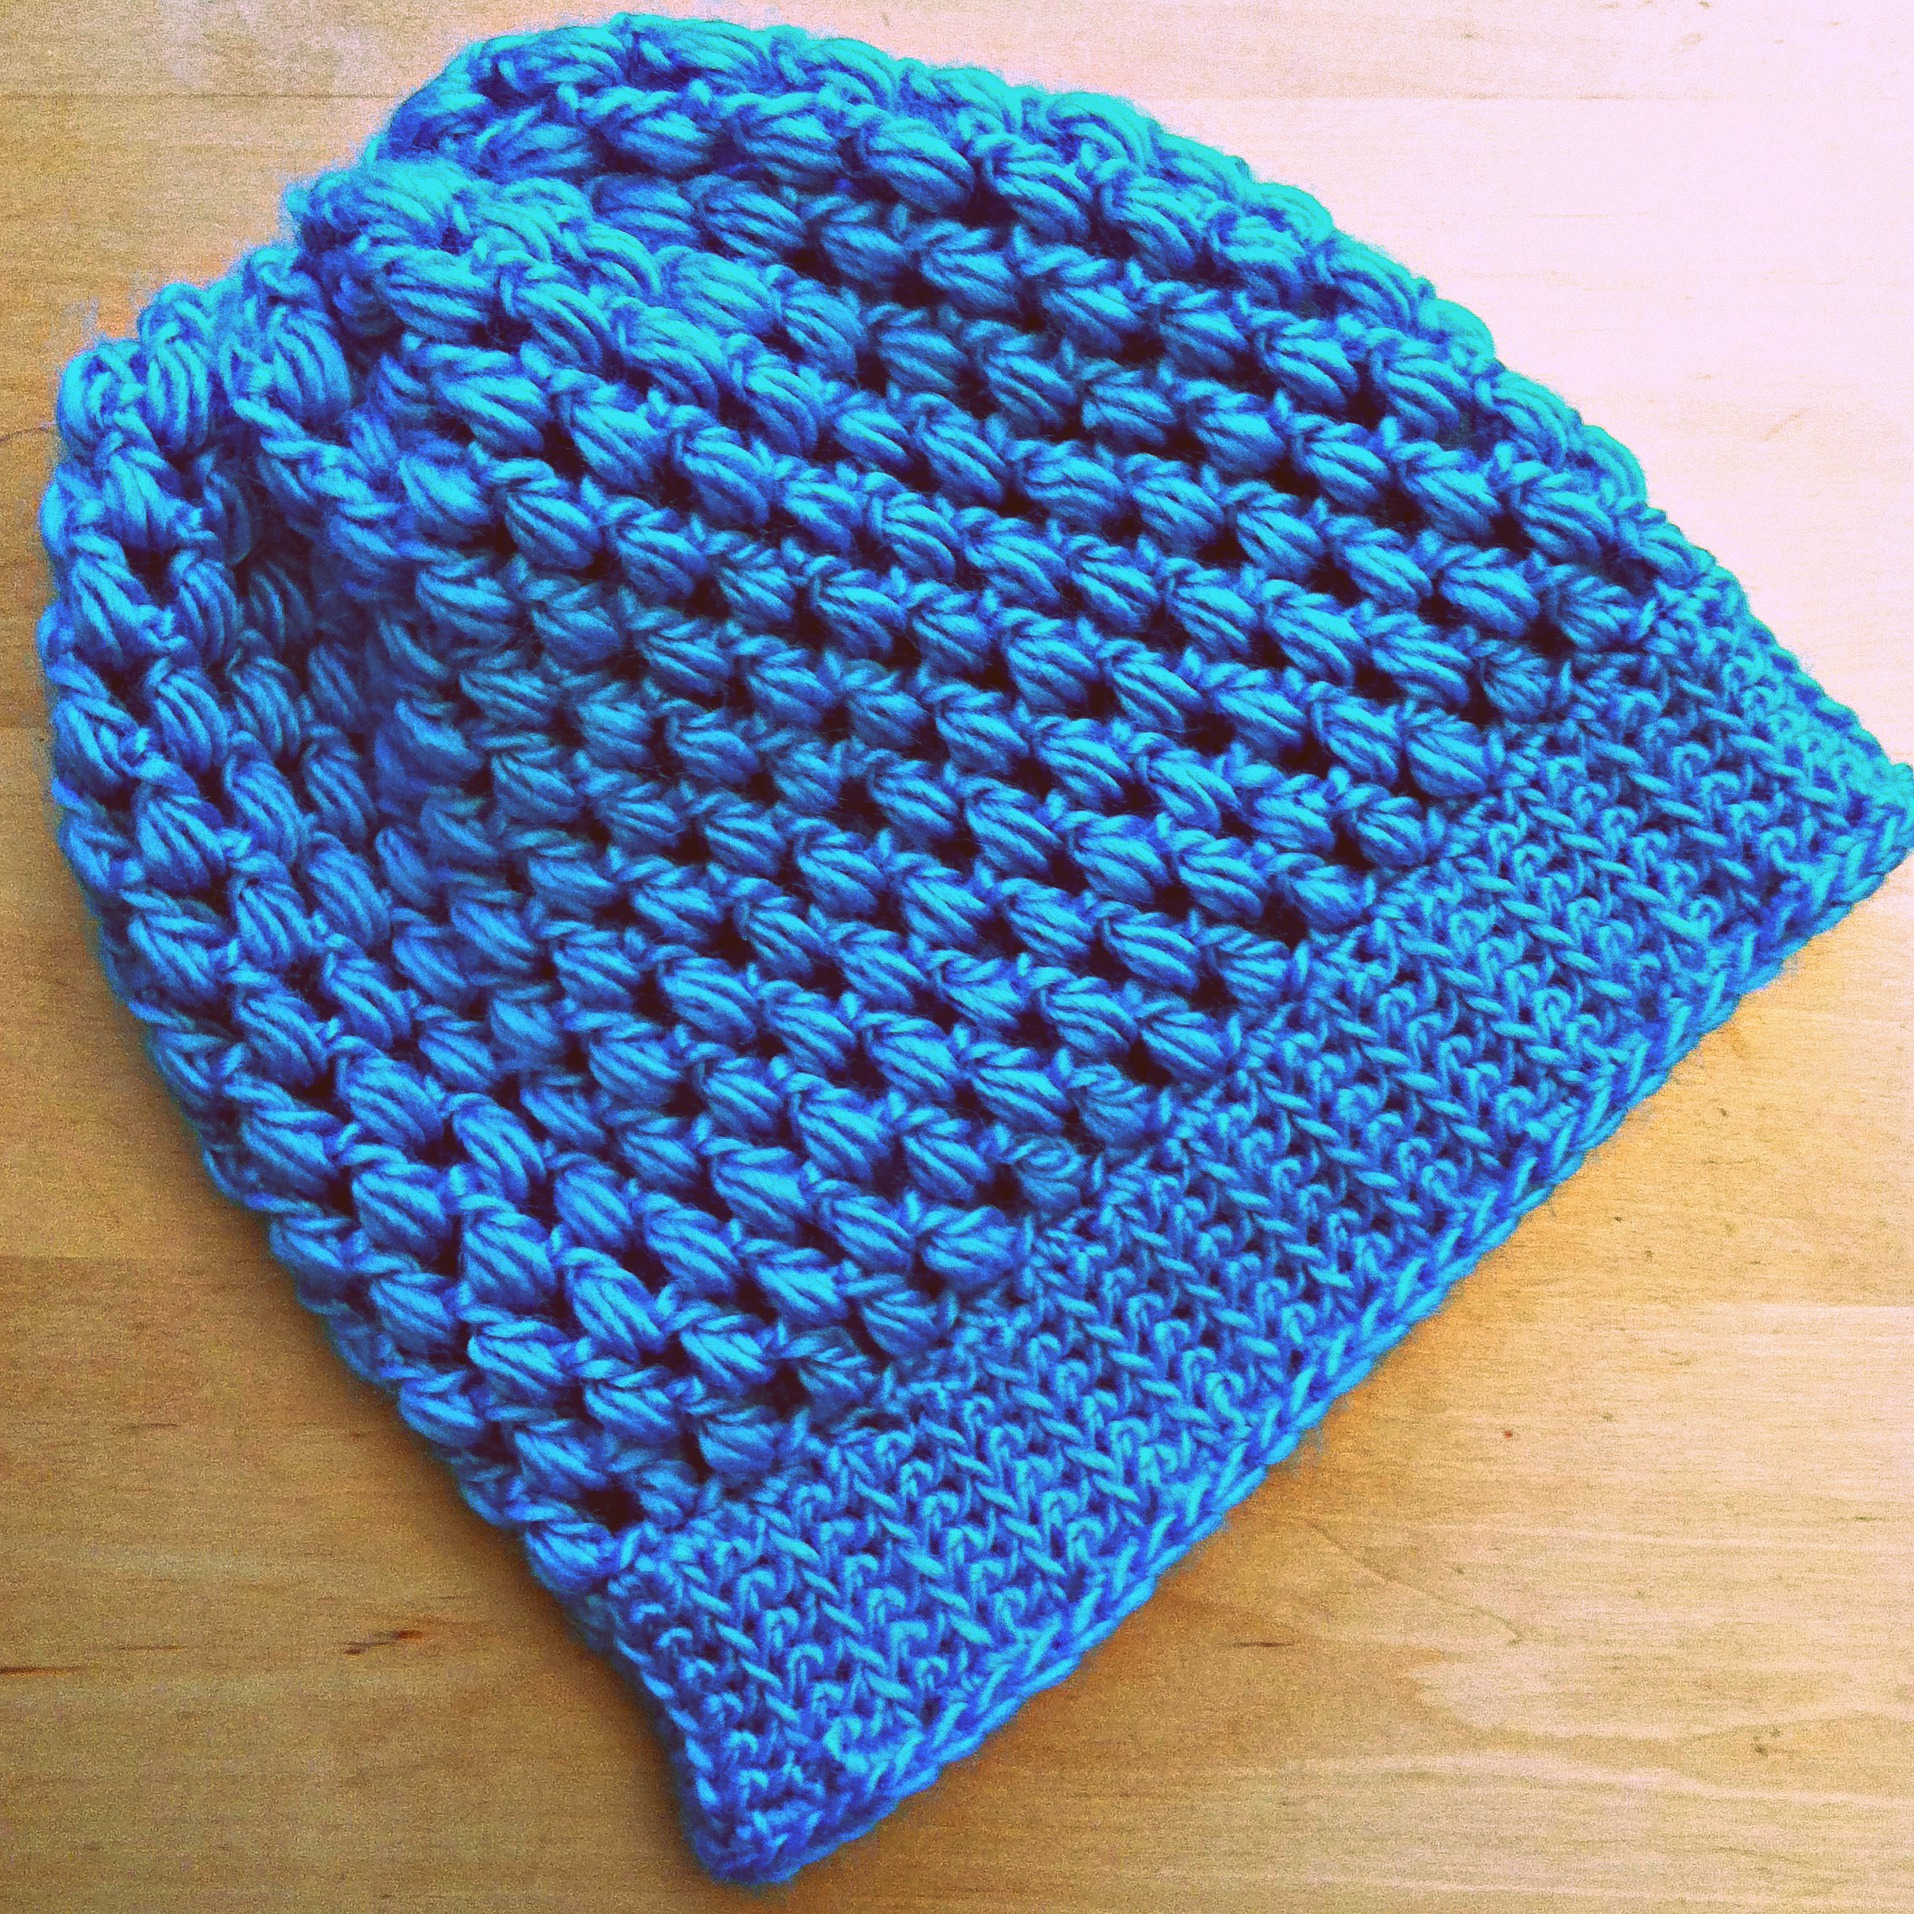 34 Slouchy Beanie Crochet Patterns for Beginners - The Funky Stitch